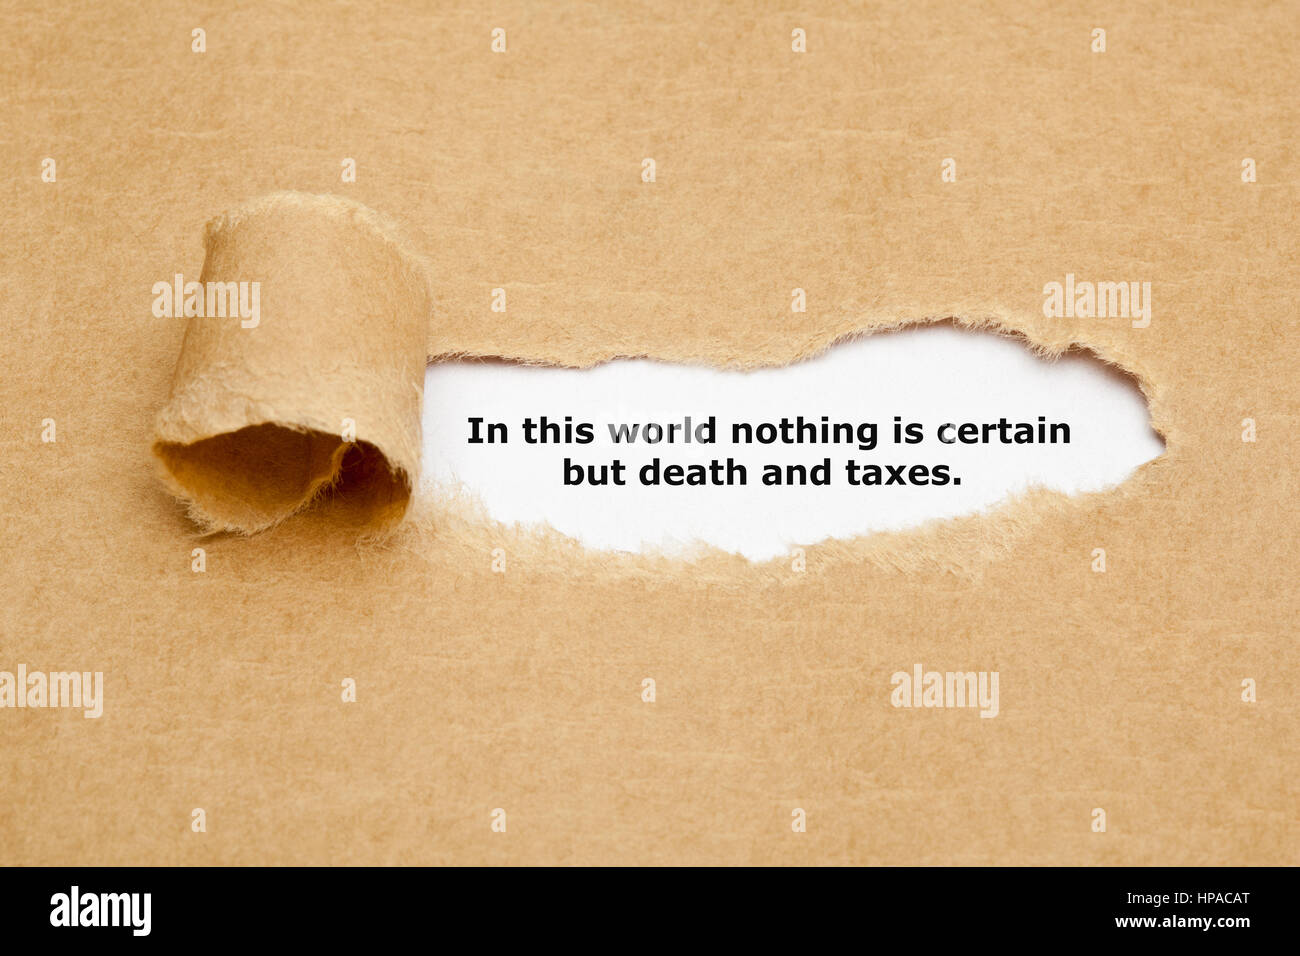 Quote In this world nothing is certain but death and taxes, appearing behind ripped brown paper. - Stock Image